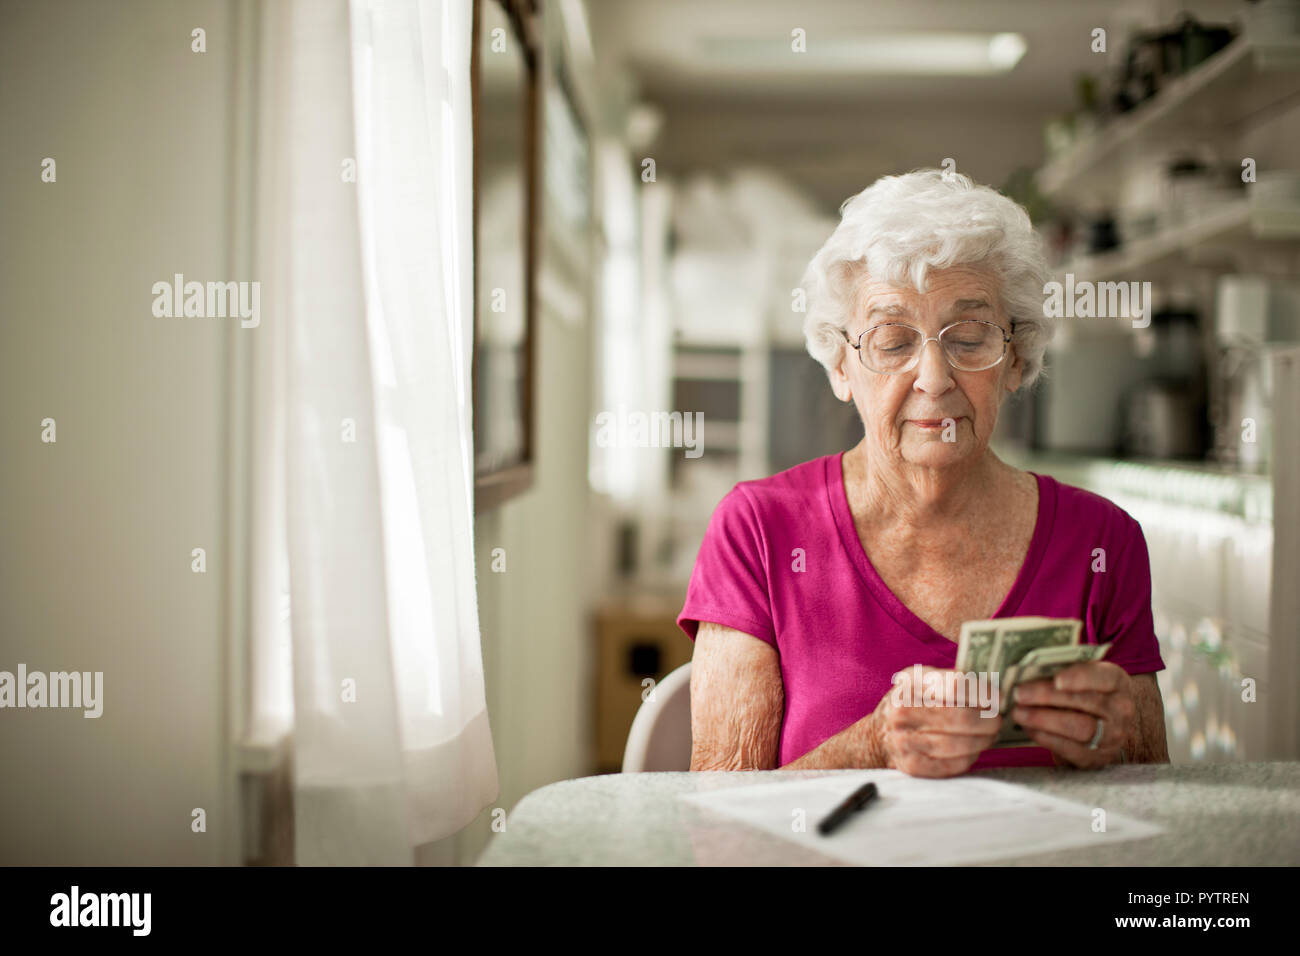 Anxious elderly woman sorts through her money to see if she has enough to pay the bill in front of her. Stock Photo